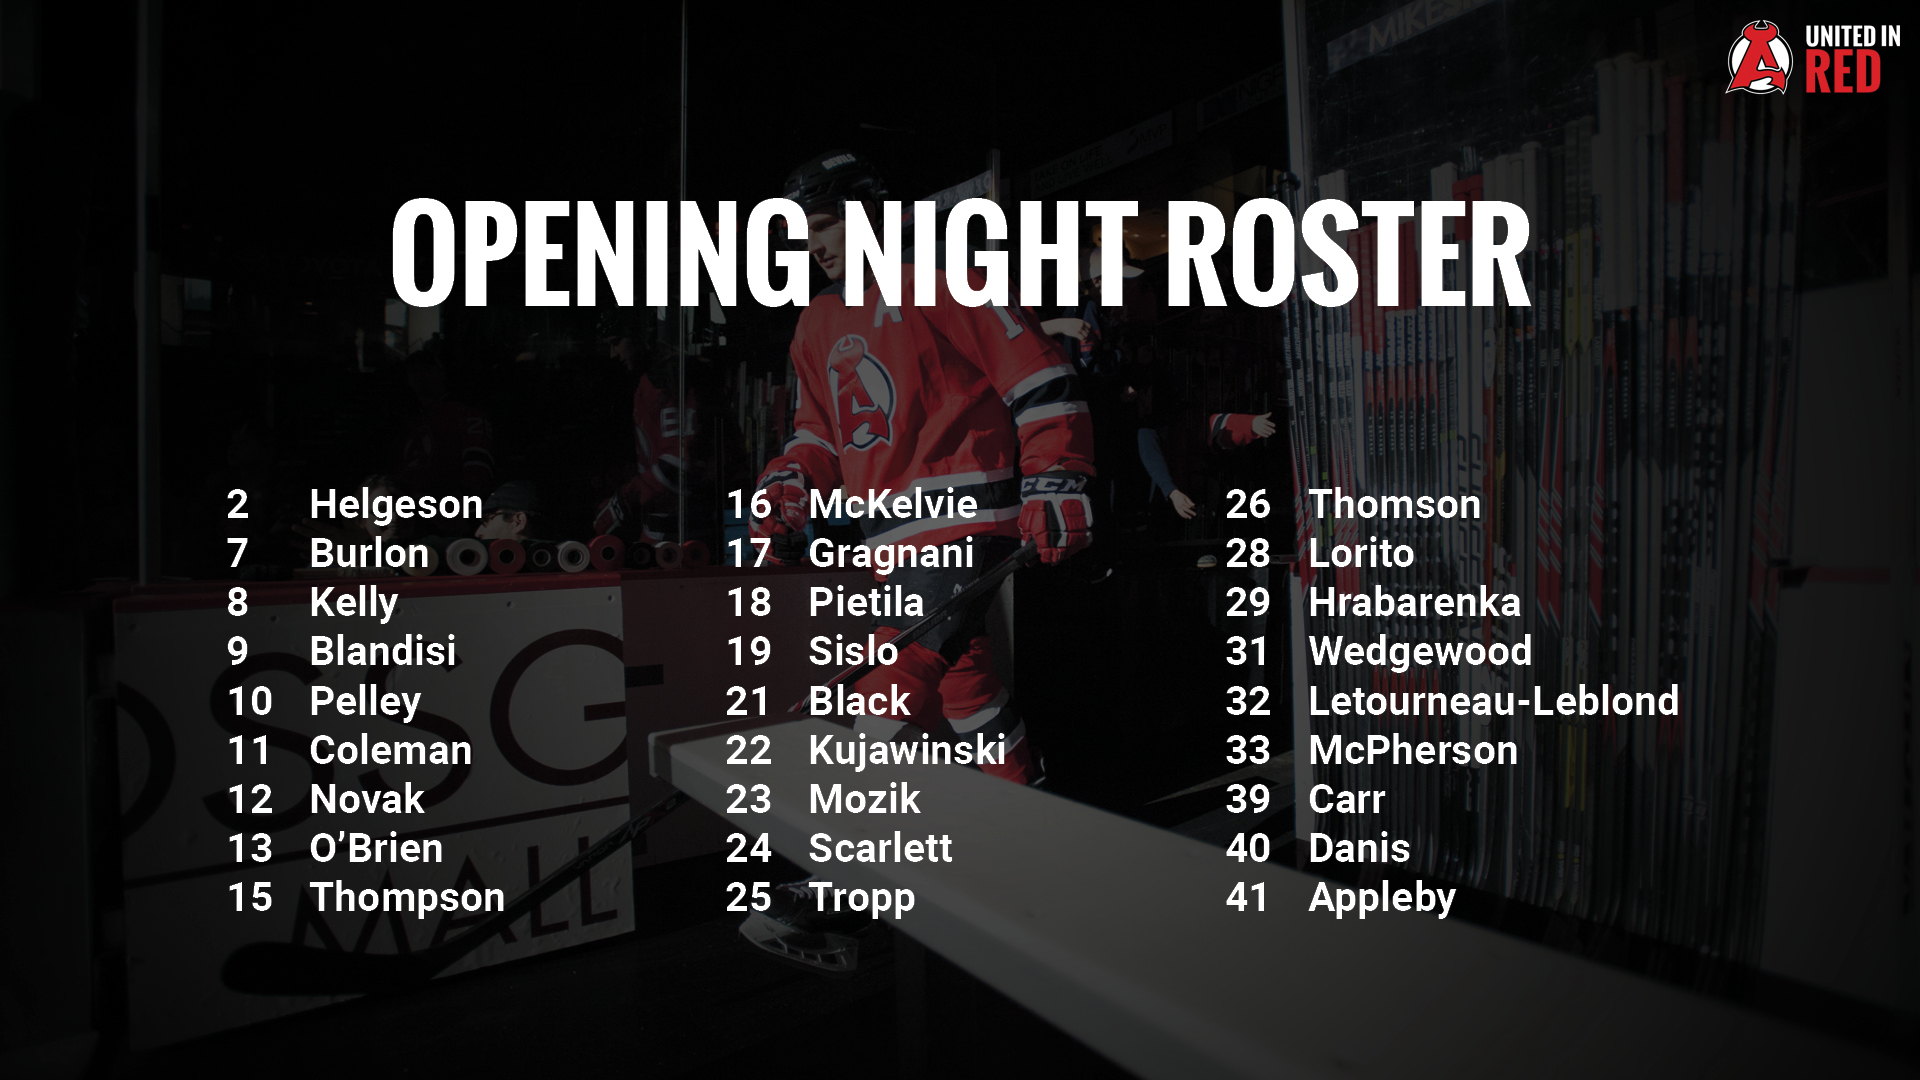 Opening Night Roster